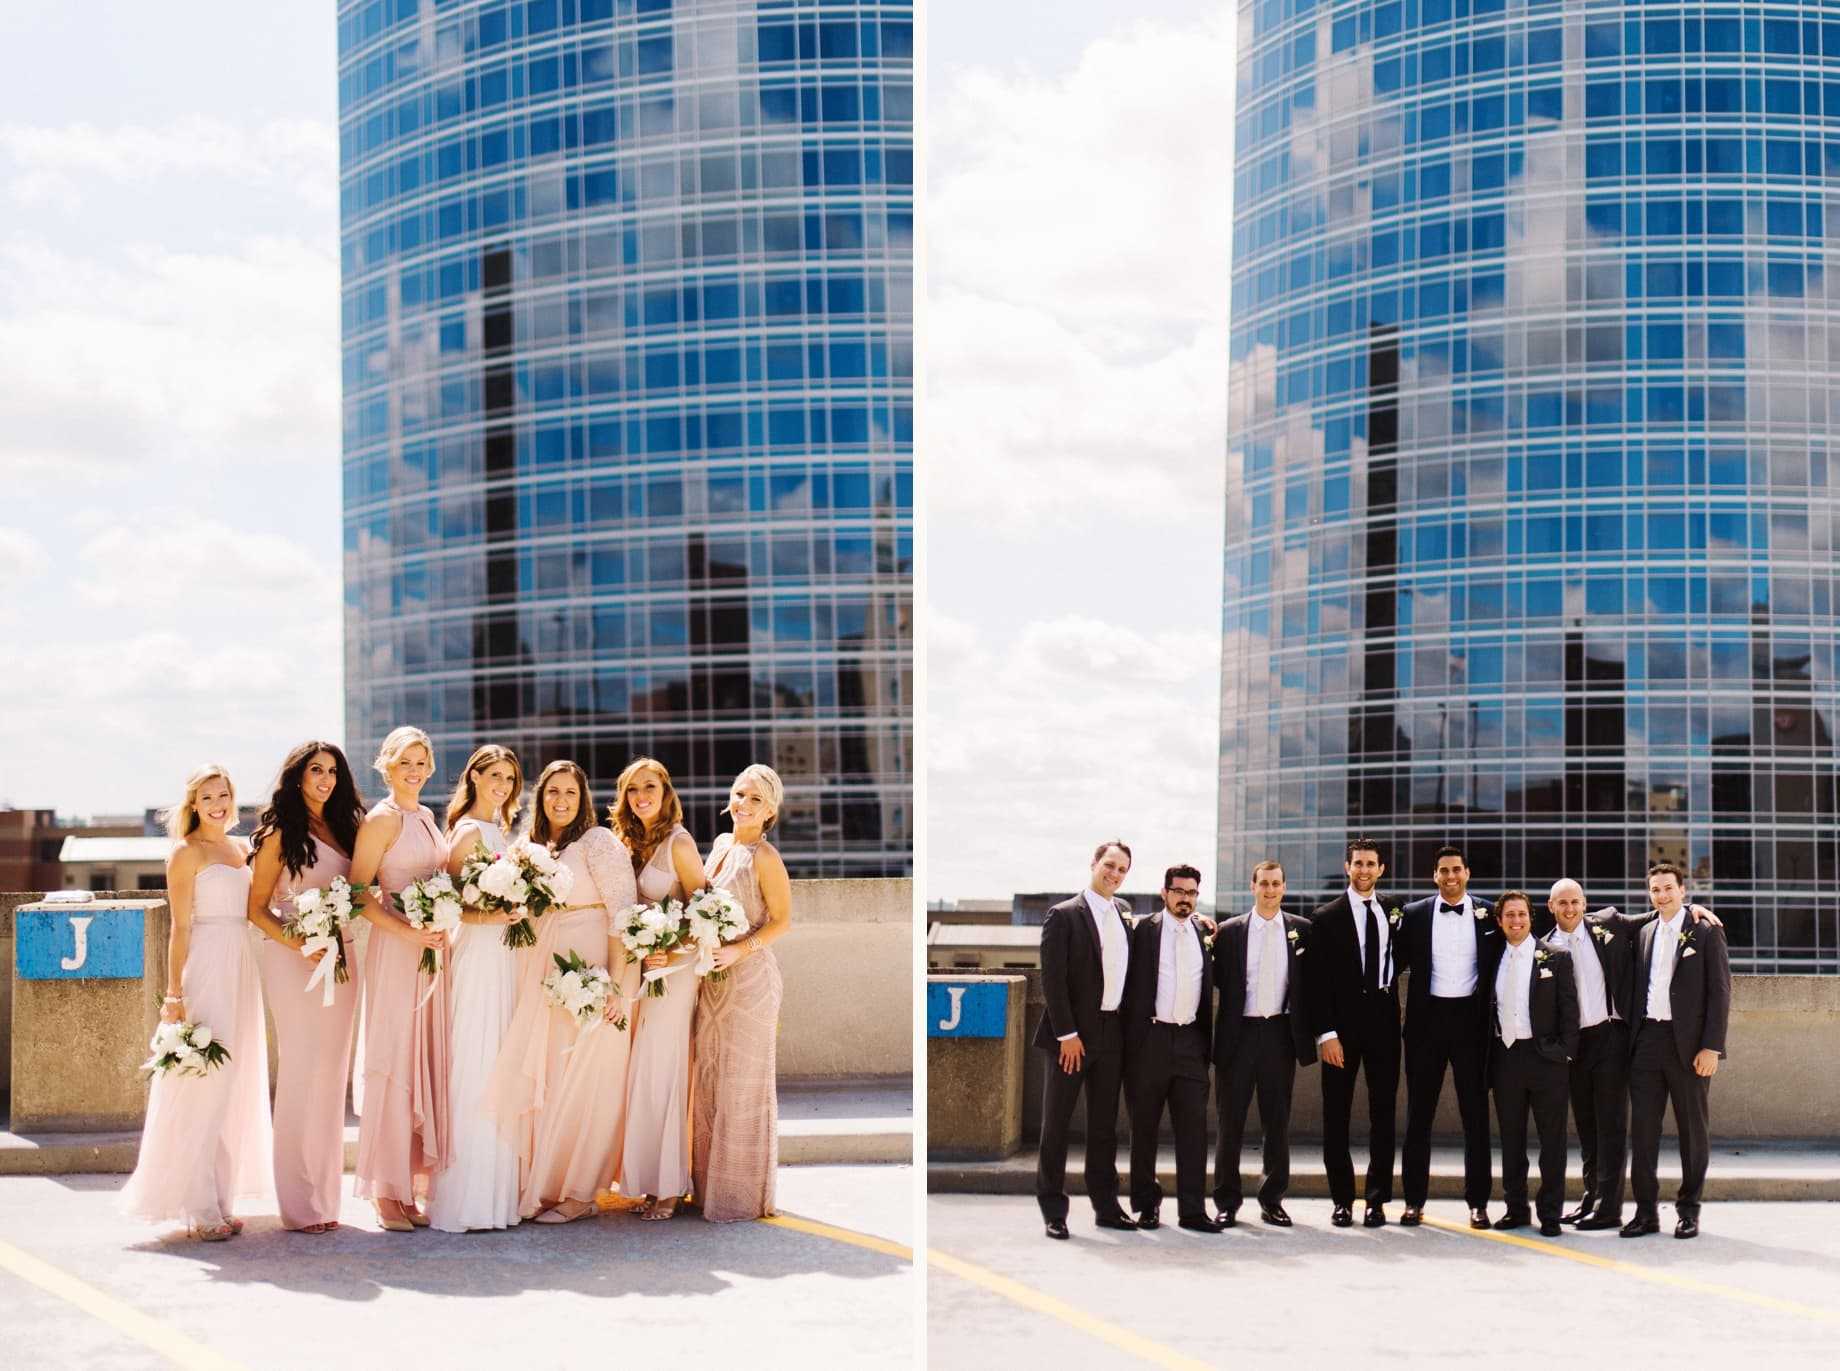 bridesmaids in pink and groomsmen in tuxes